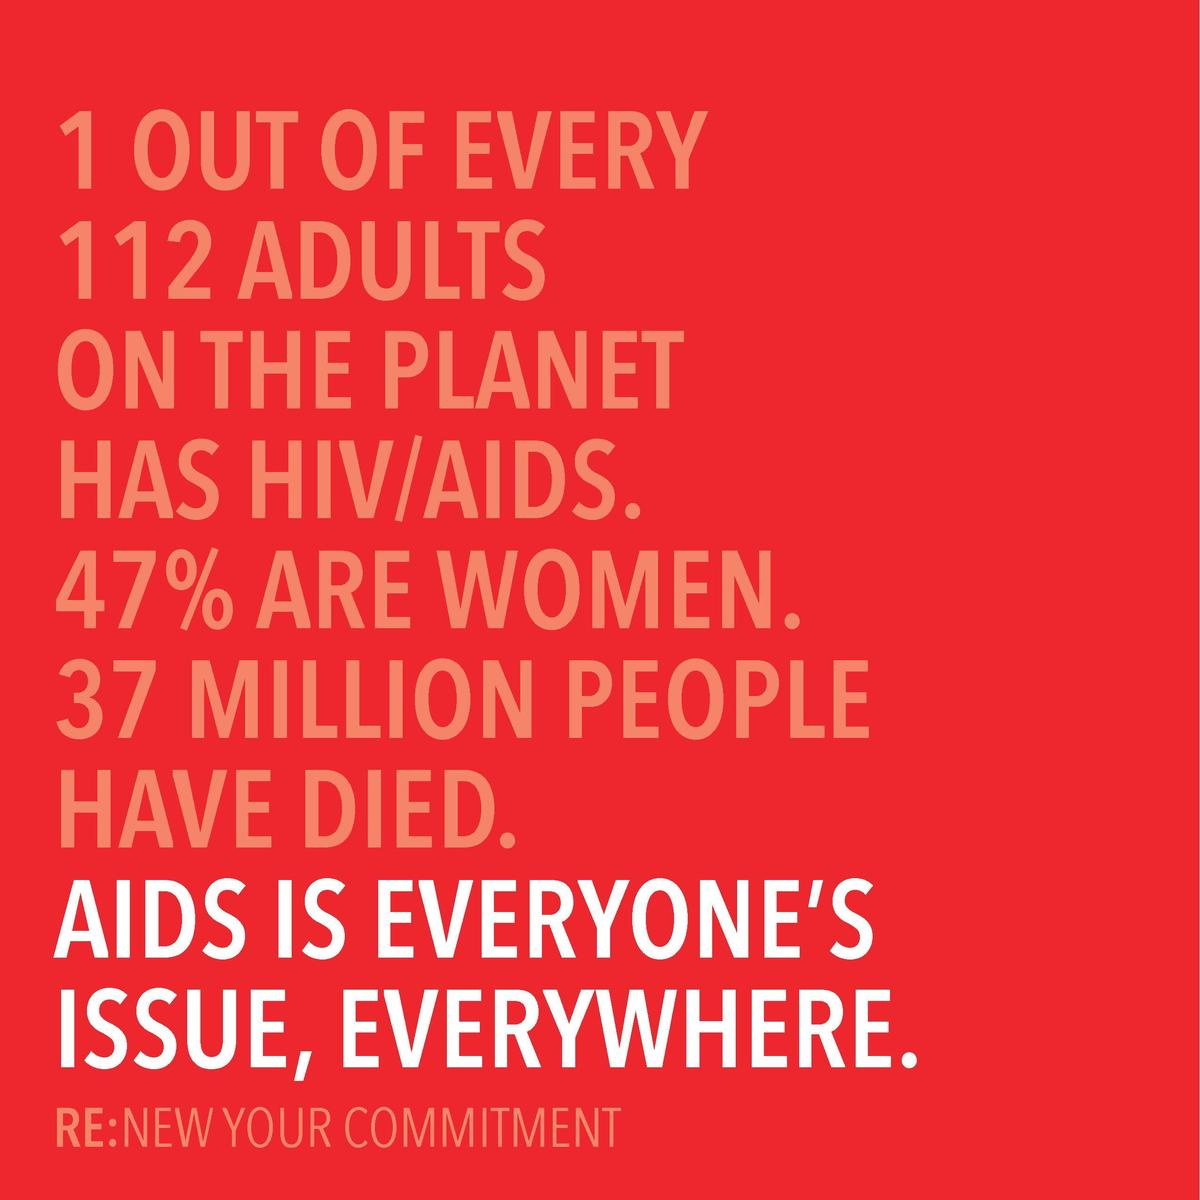 1 OUT OF EVERY 112 ADULTS ON THE PLANET HAS HIV AIDS. 47  ARE WOMEN. 37 MILLION PEOPLE HAVE DIED. AIDS IS EVERYONE   S ISS...